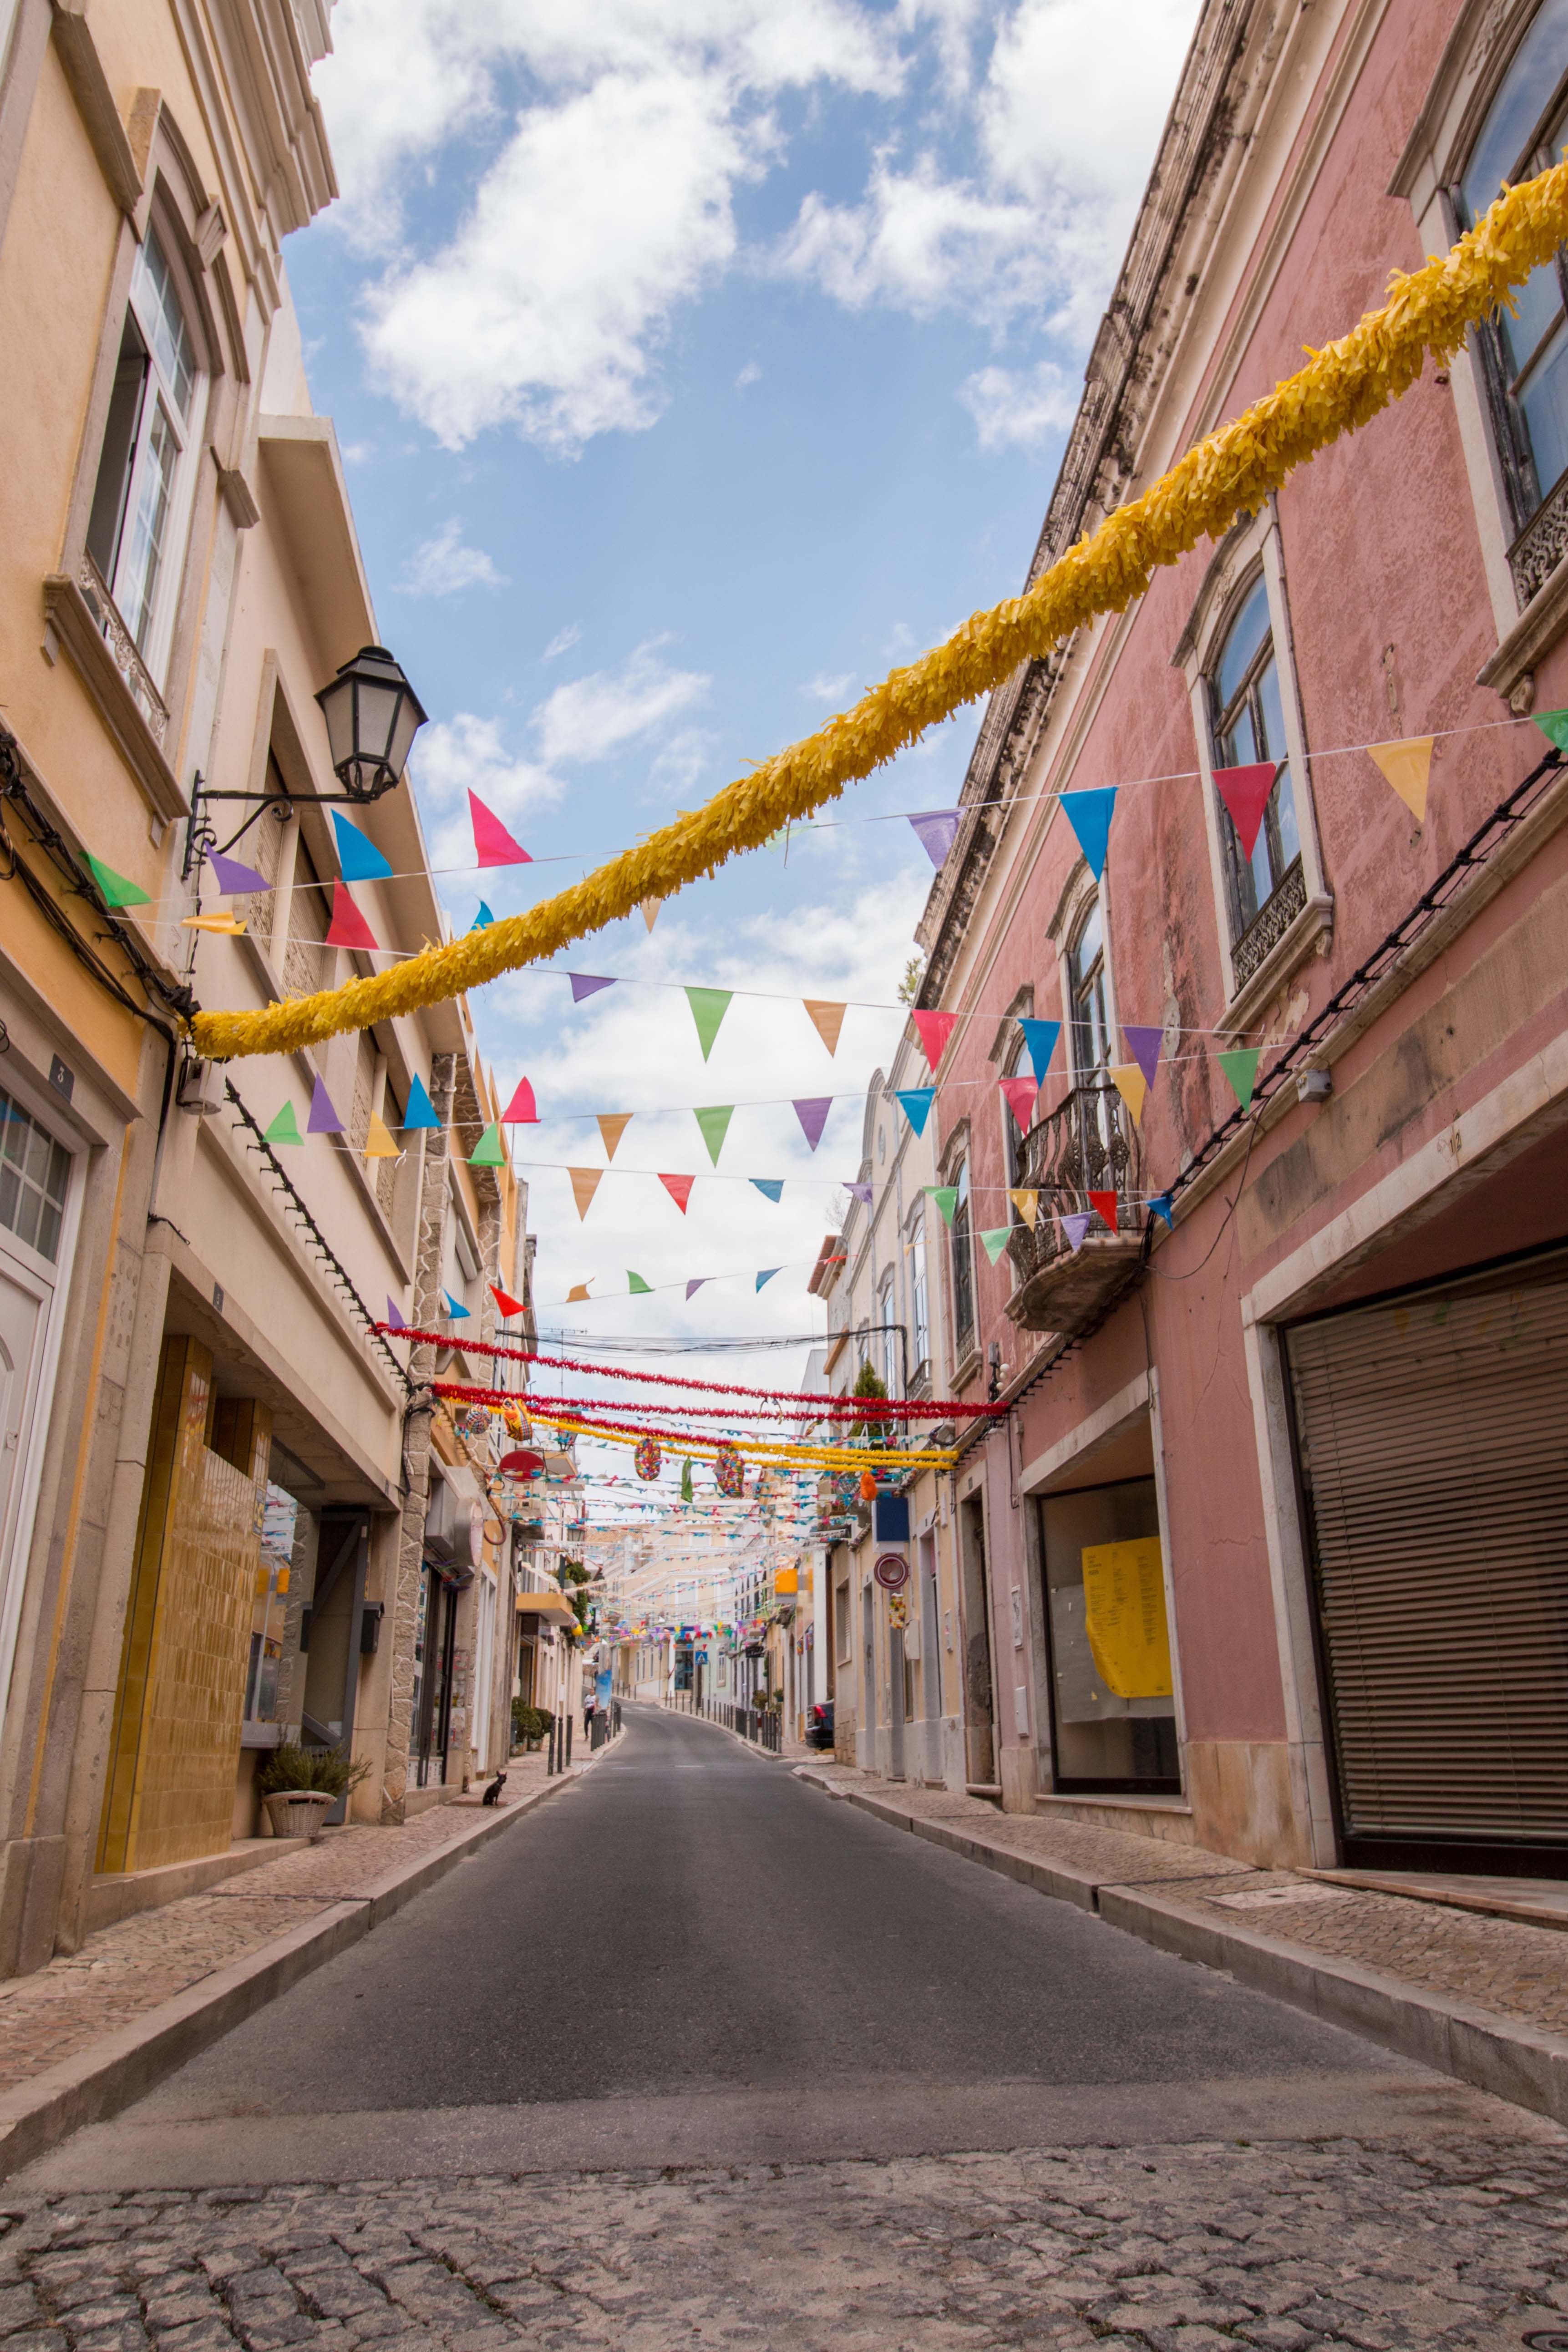 The streets of Loule